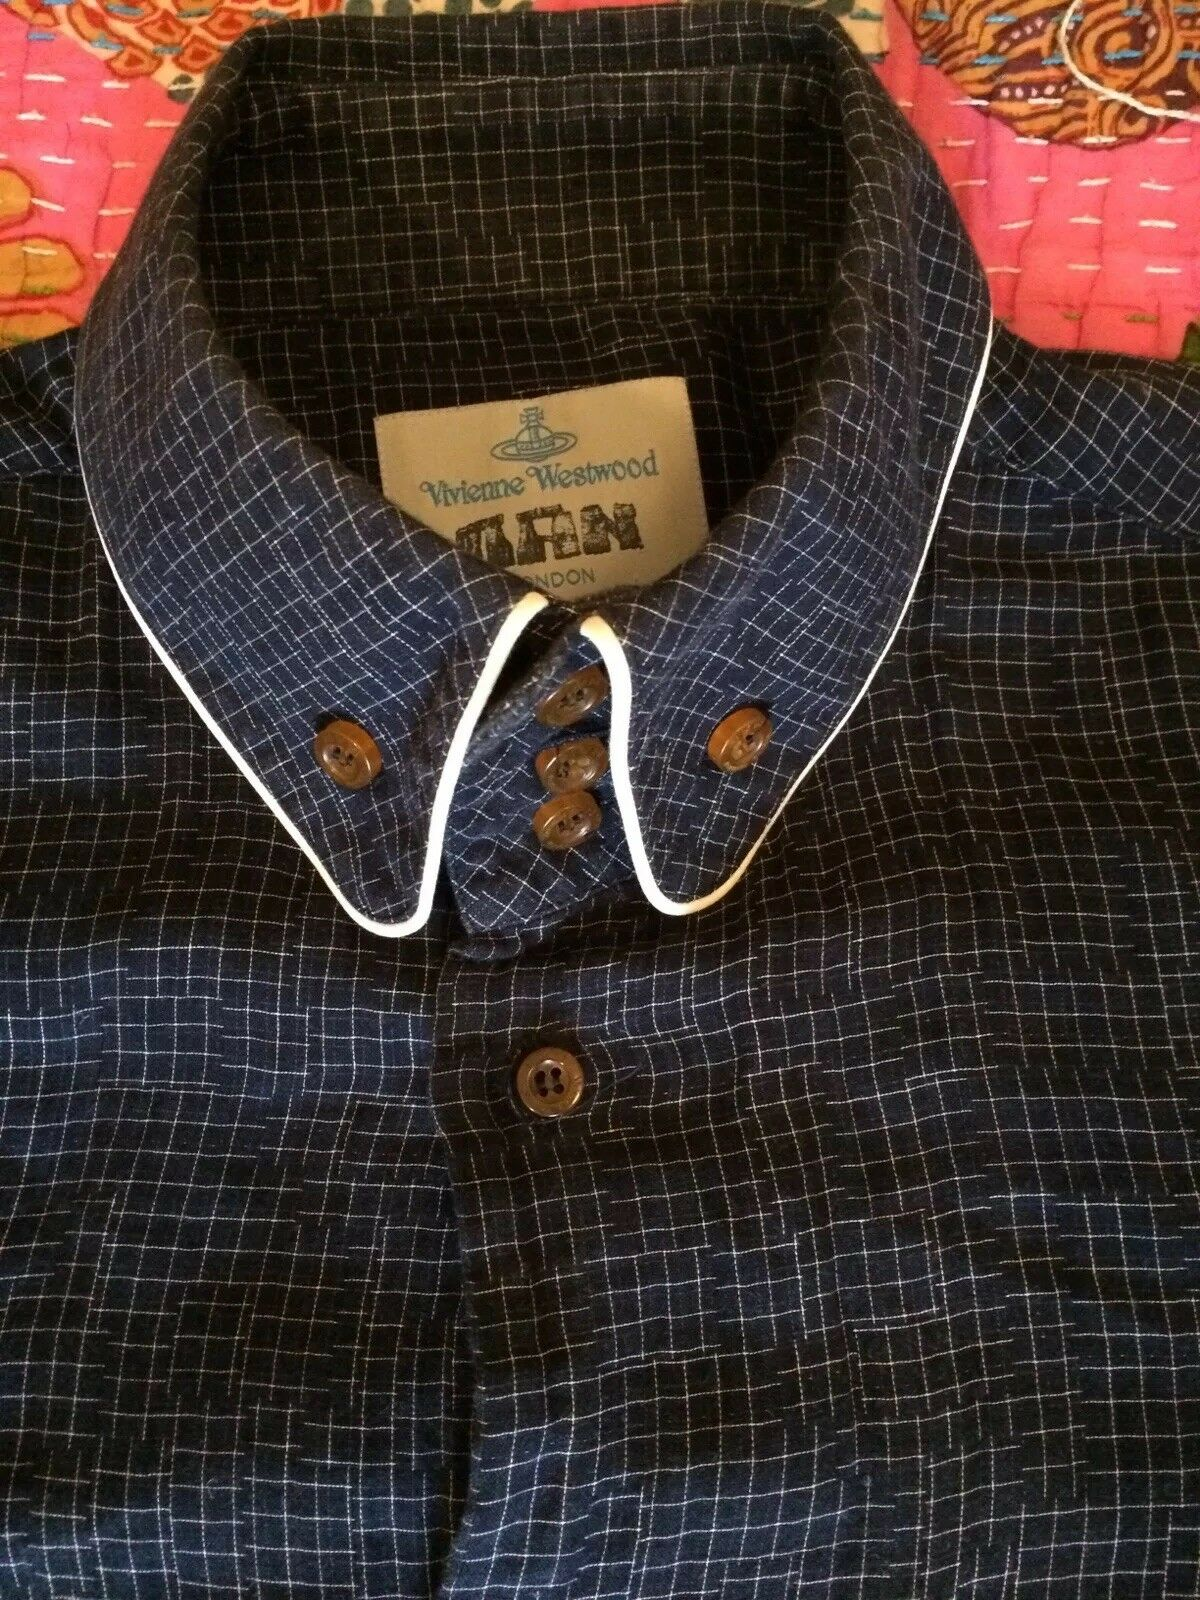 Vivienne Westwood Shirt in Navy with white square pattern - Size 3 (III)